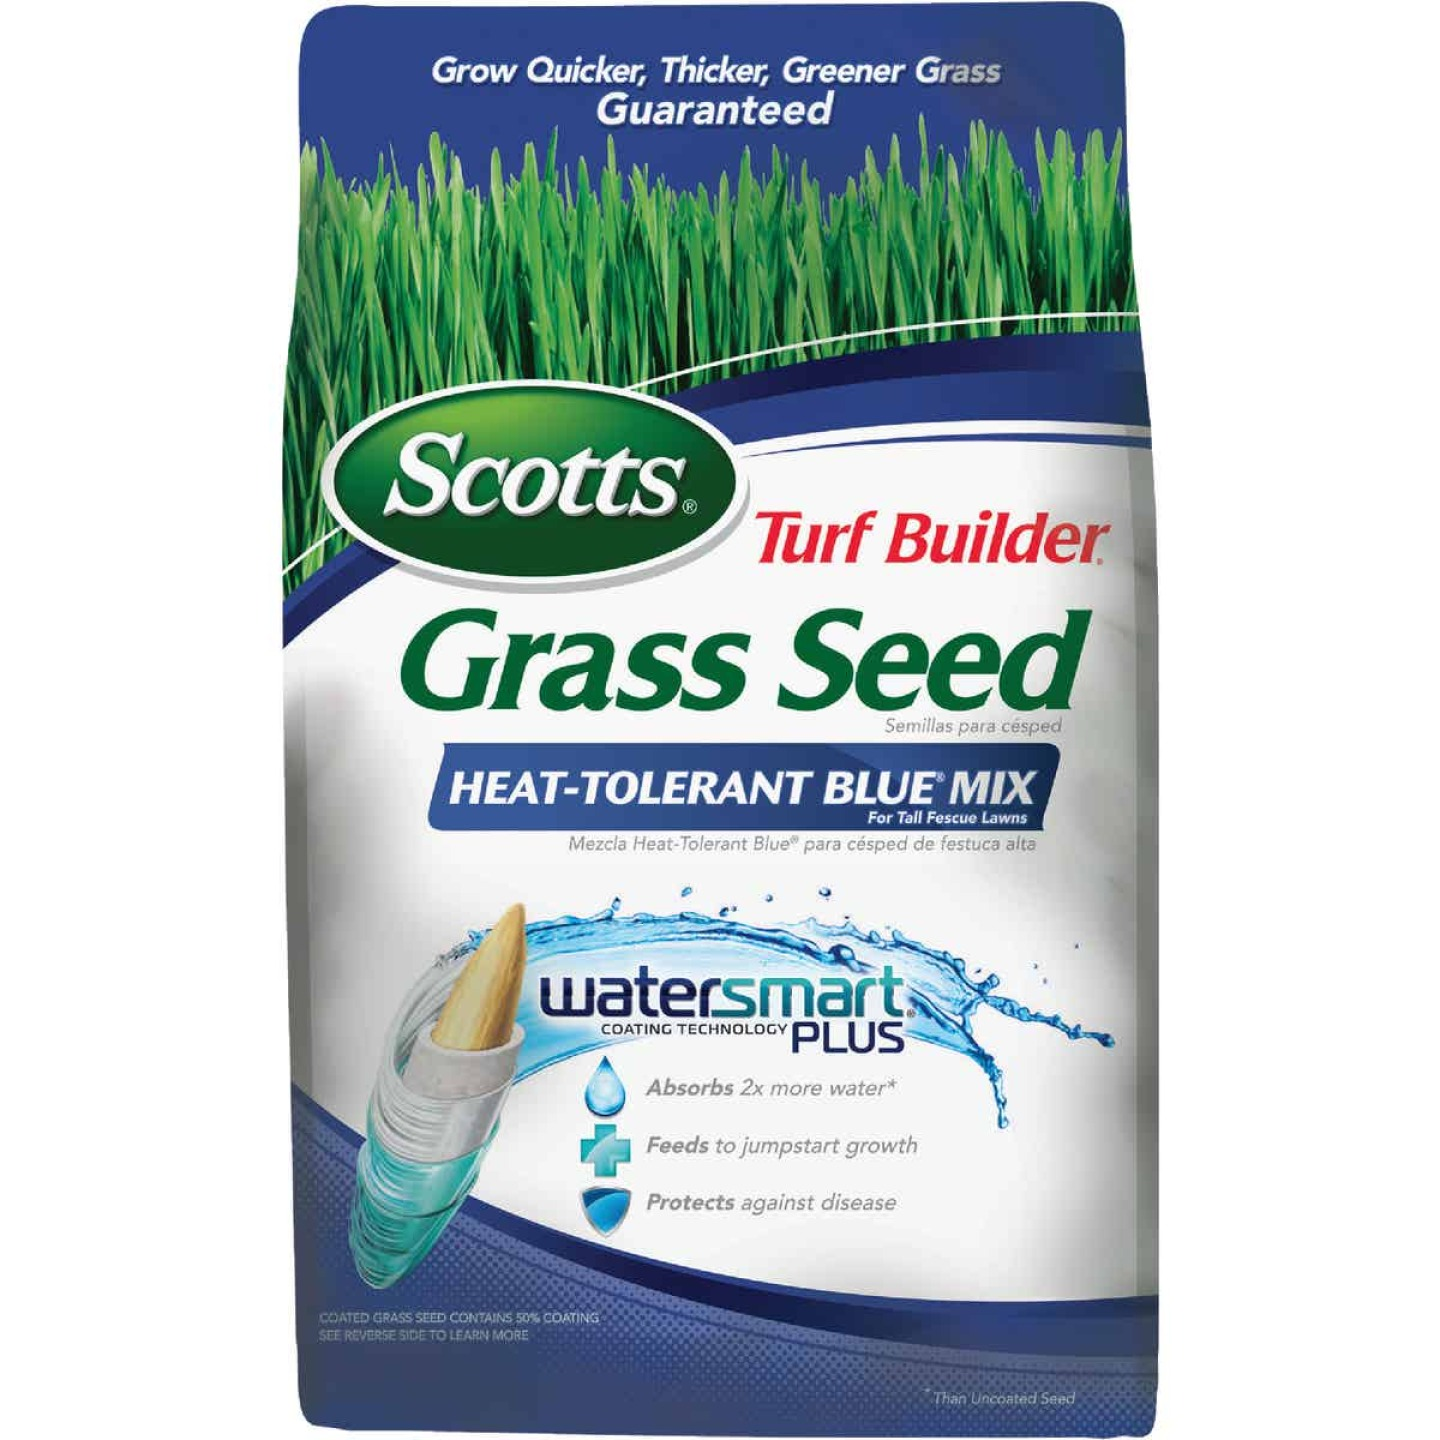 Scotts Turf Builder 3 Lb. 750 Sq. Ft. Coverage Heat Tolerant Blue Grass Seed Image 1